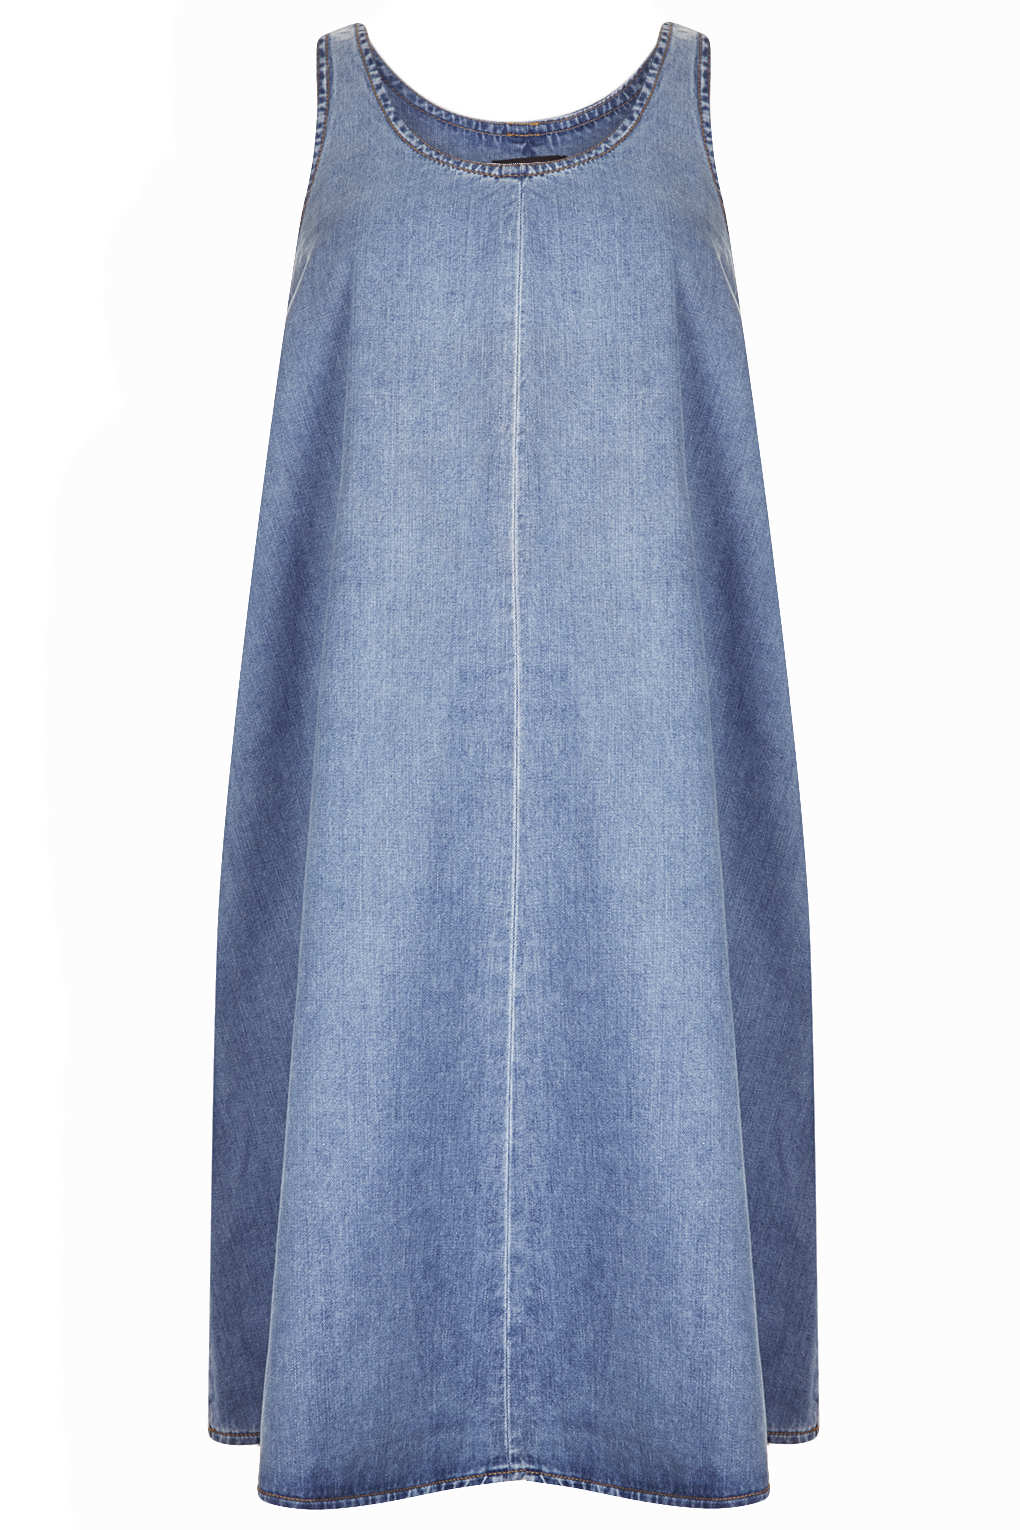 Topshop maternity moto denim trapeze dress in blue lyst gallery ombrellifo Gallery